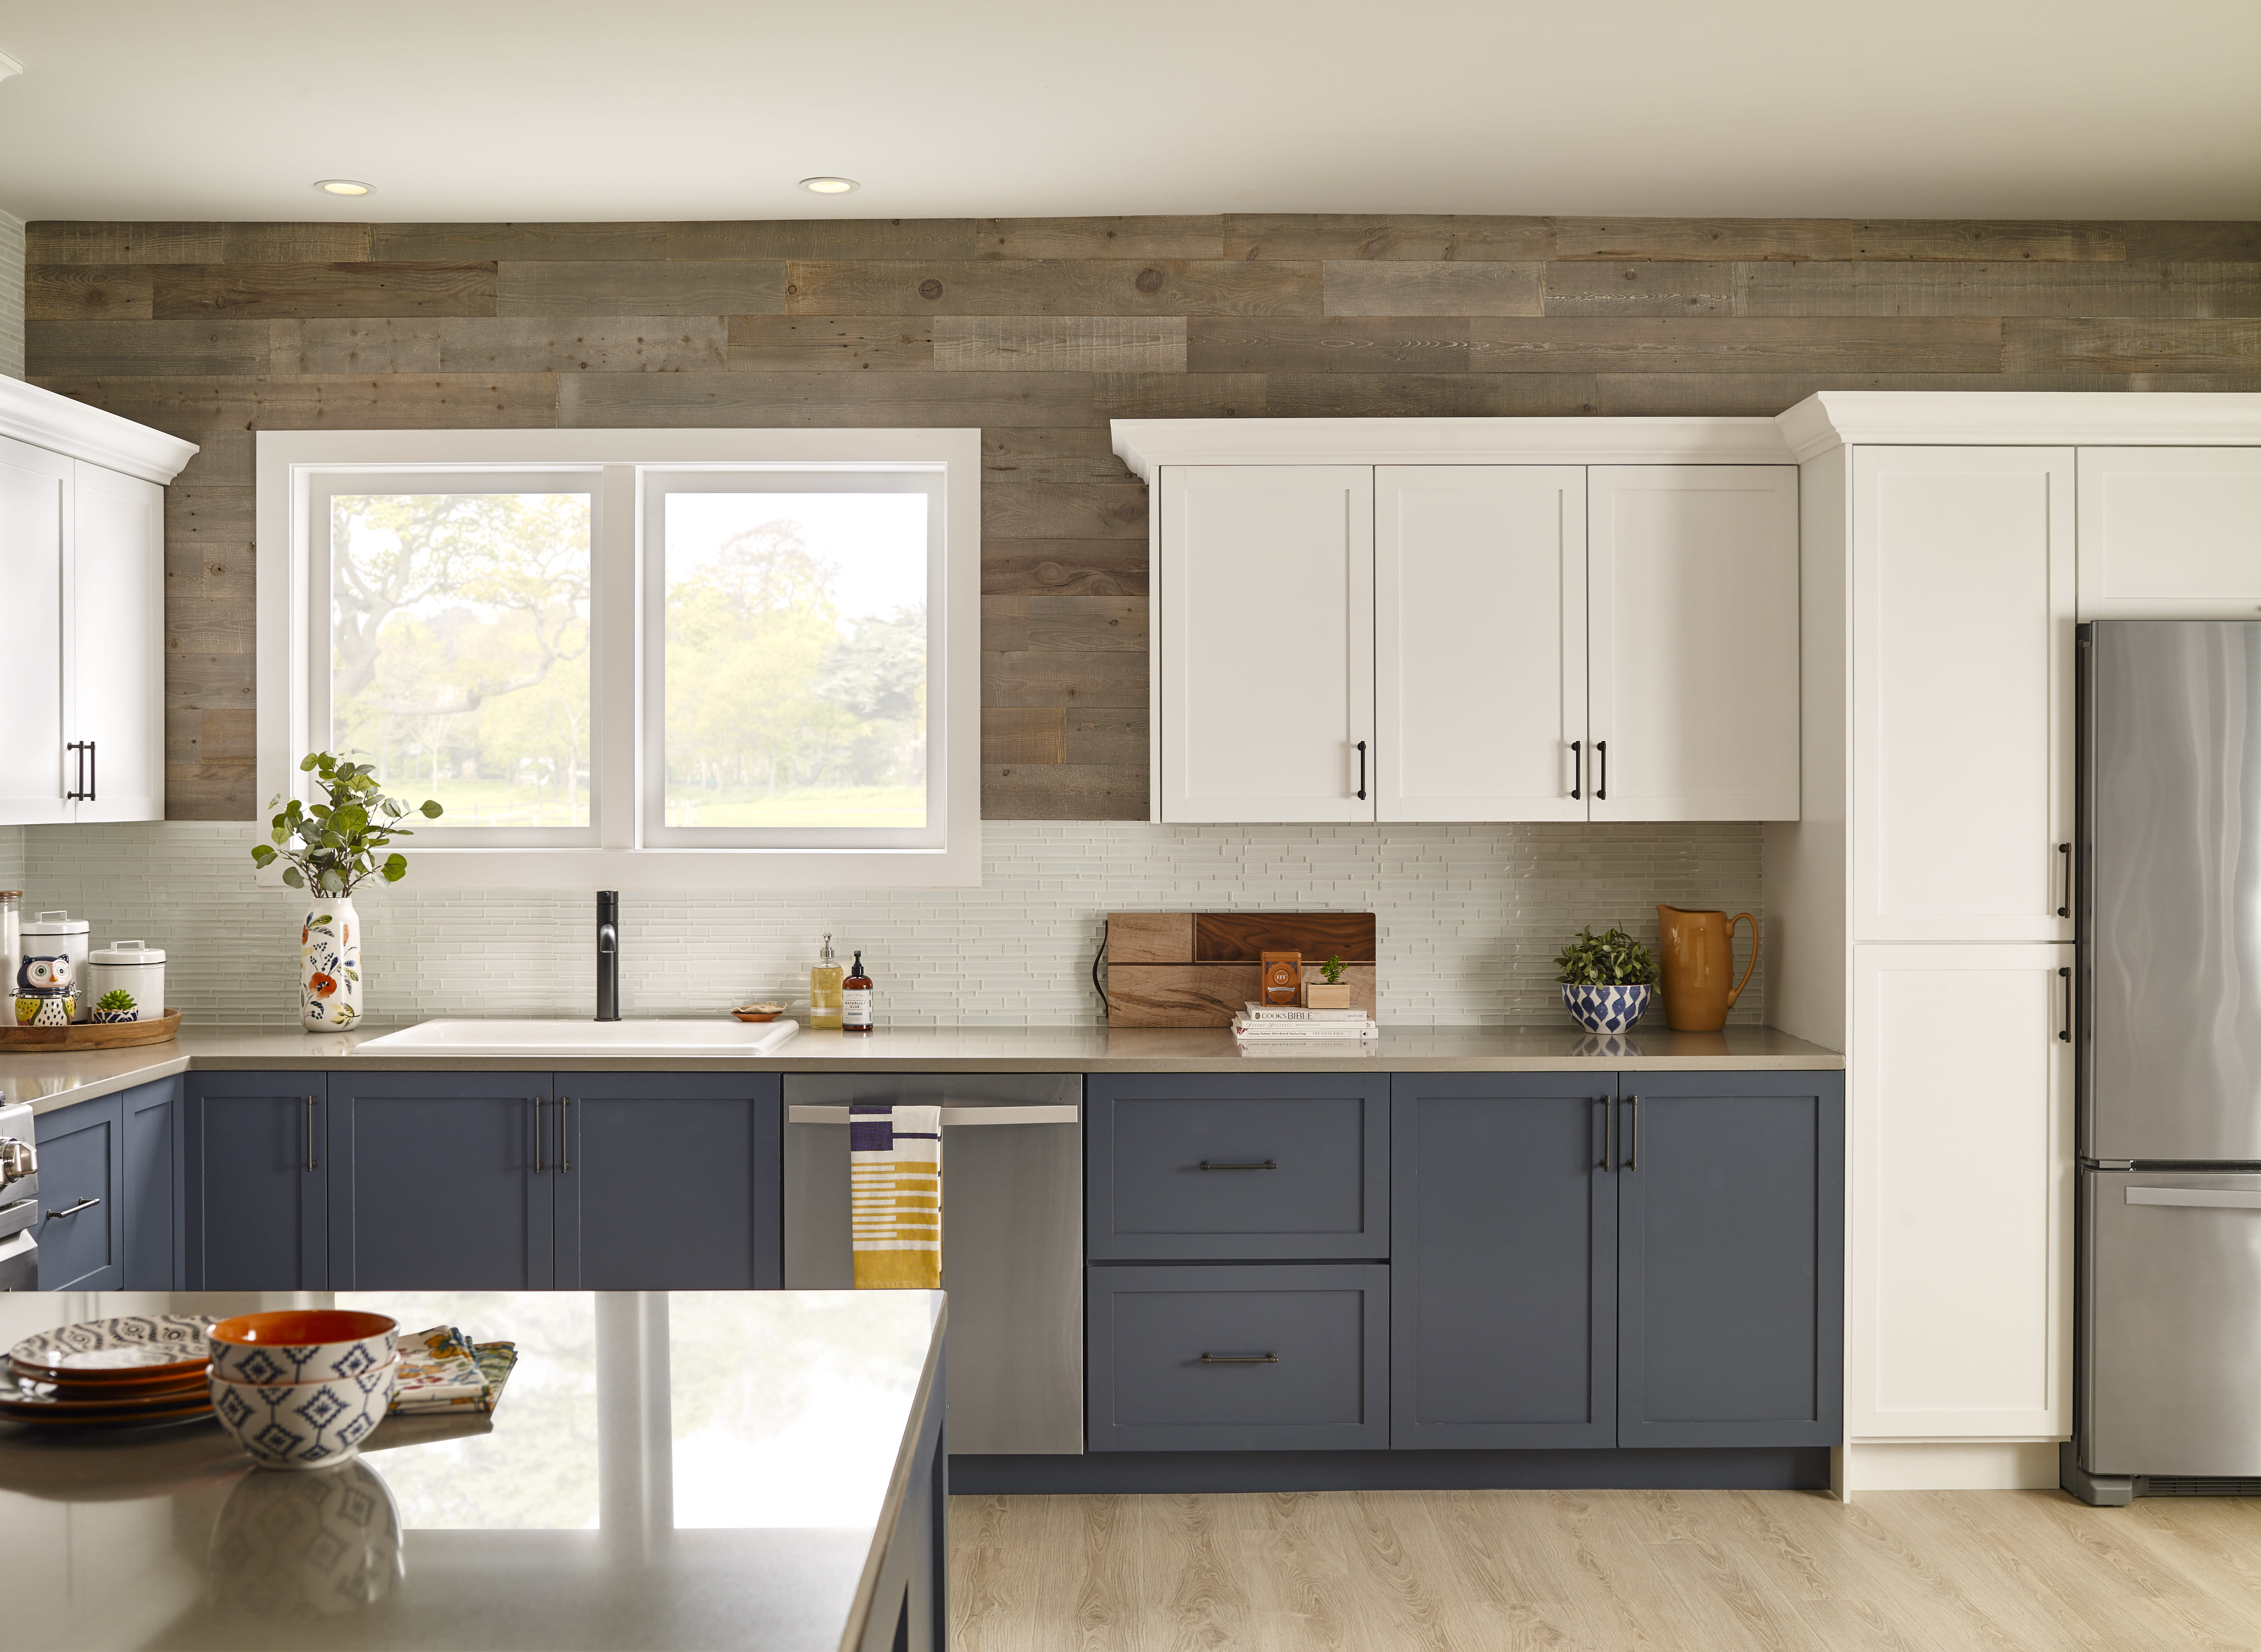 Classic kitchen with a peel and stick wood accent wall in Cobblestone finish by Stikwood.